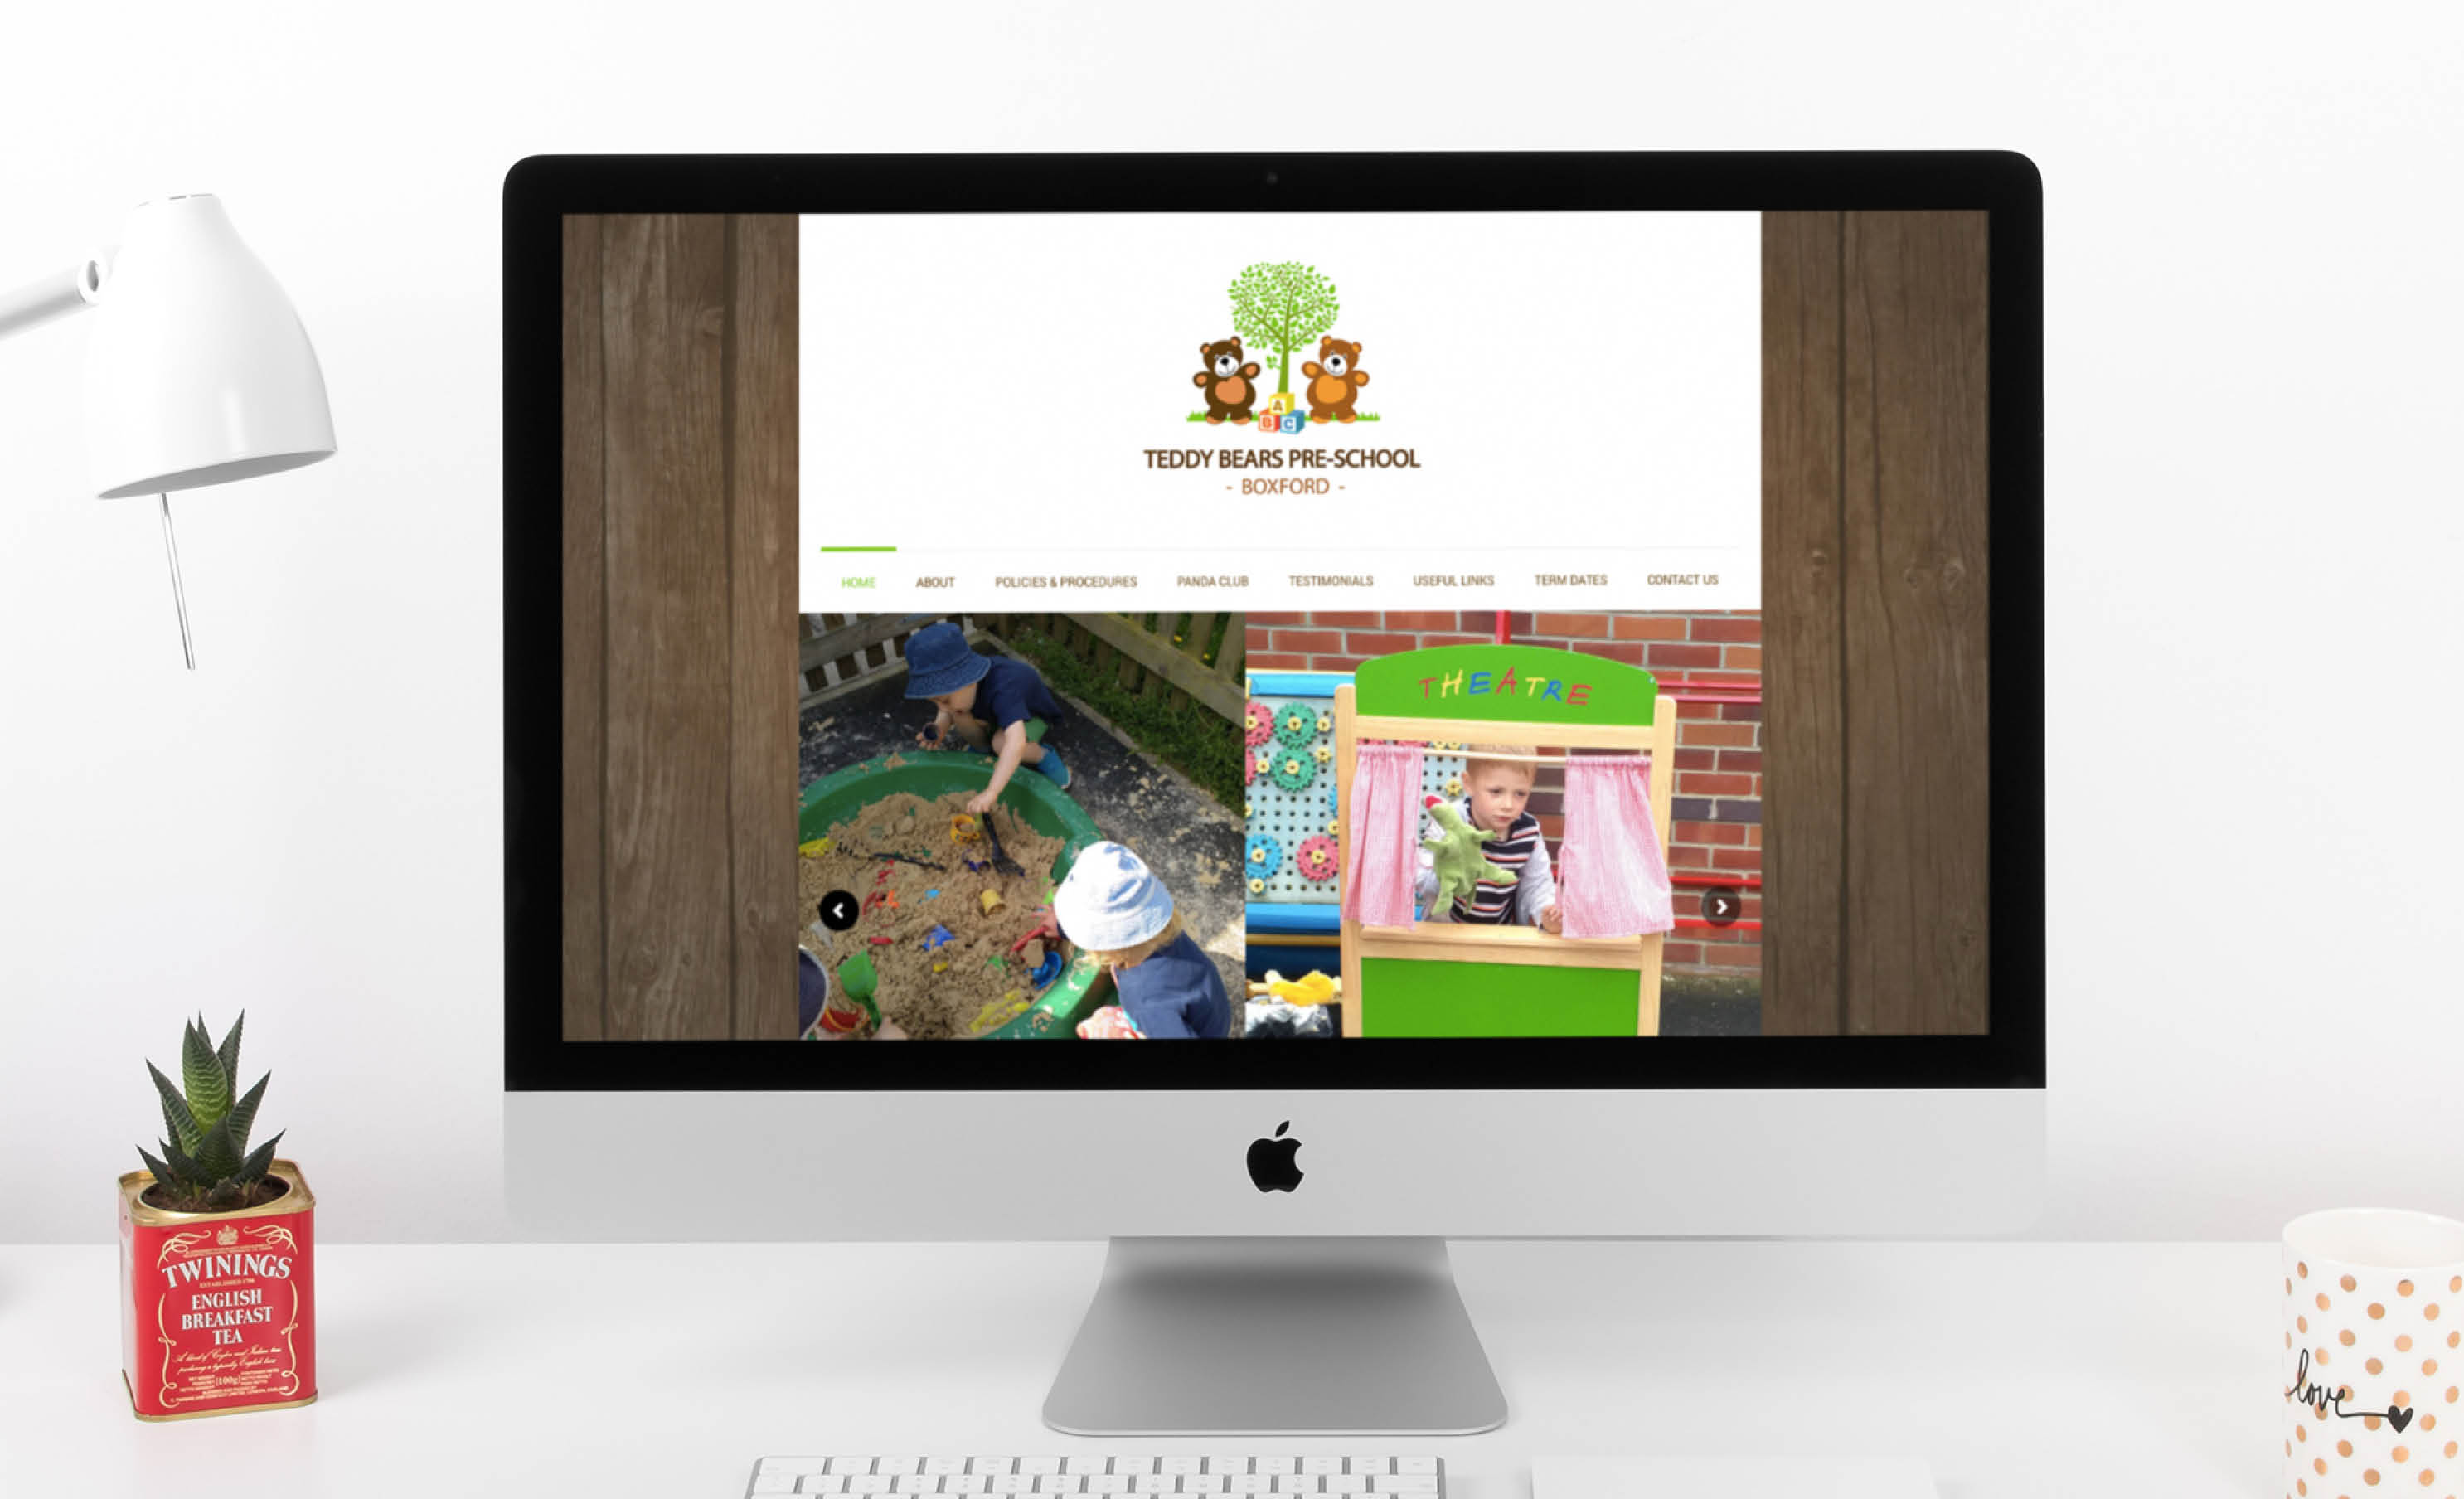 teddybears-websitedesign